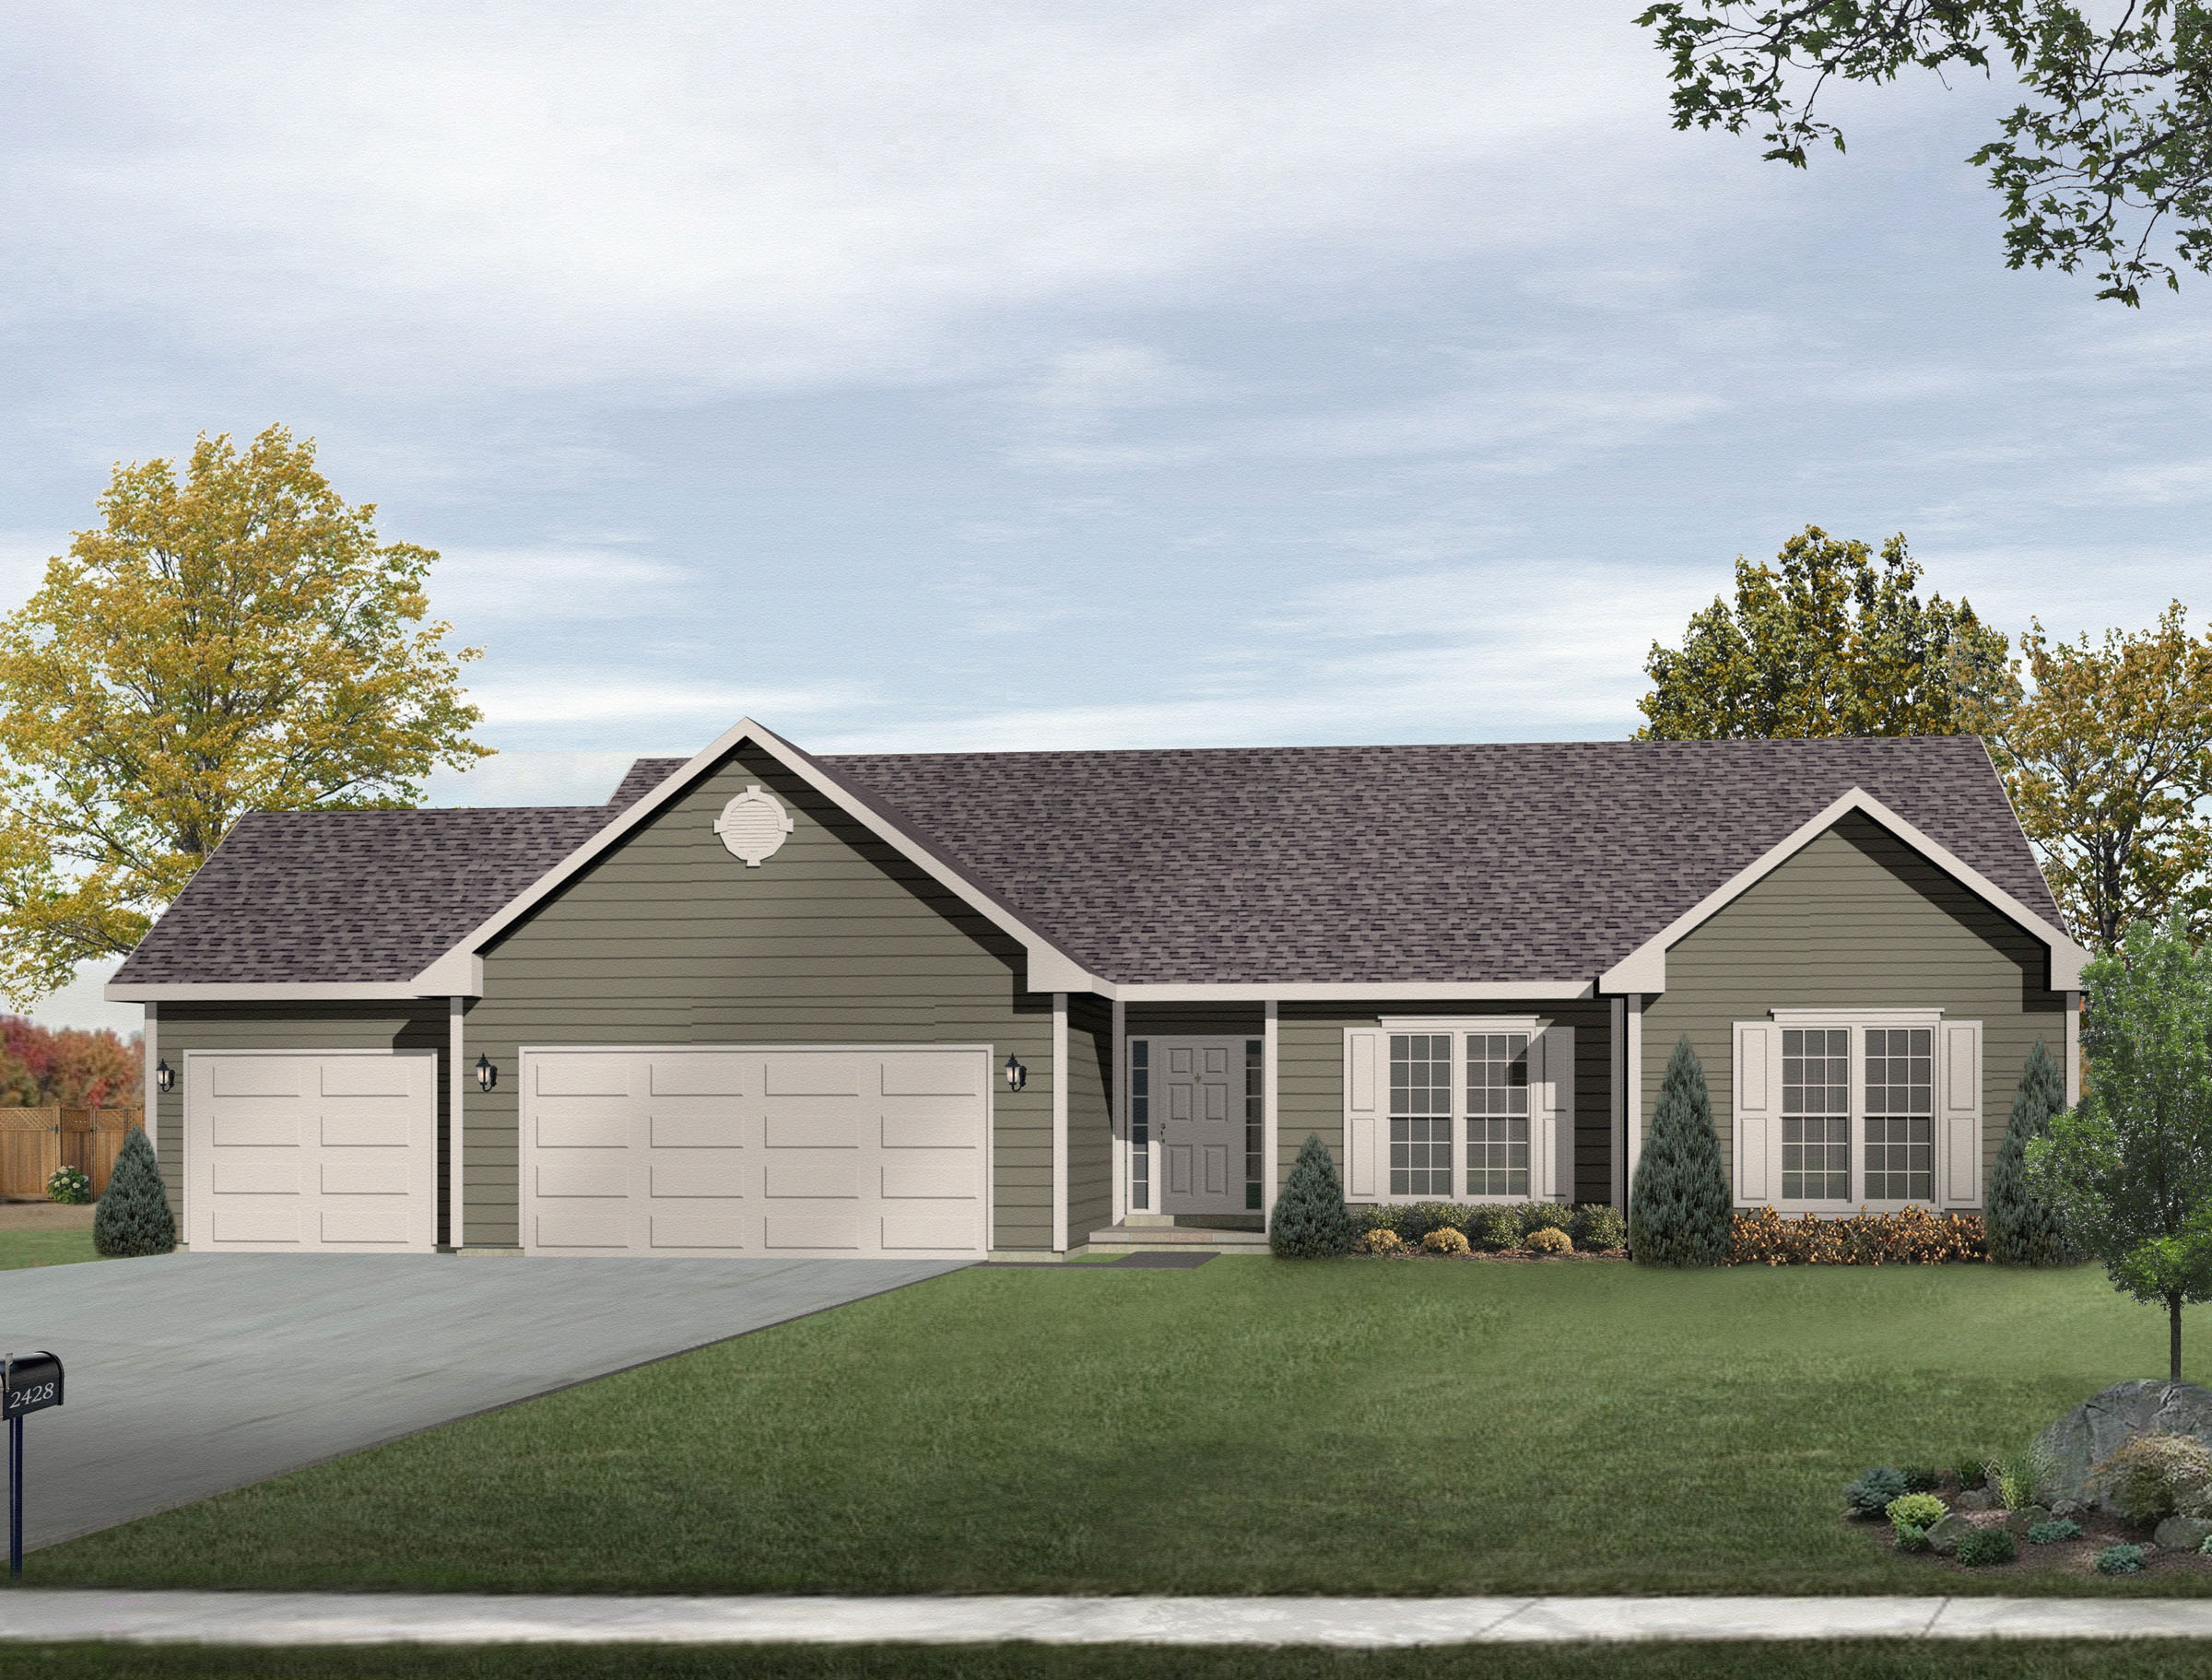 Ranch Living With Three Car Garage 2292sl: triple car garage house plans